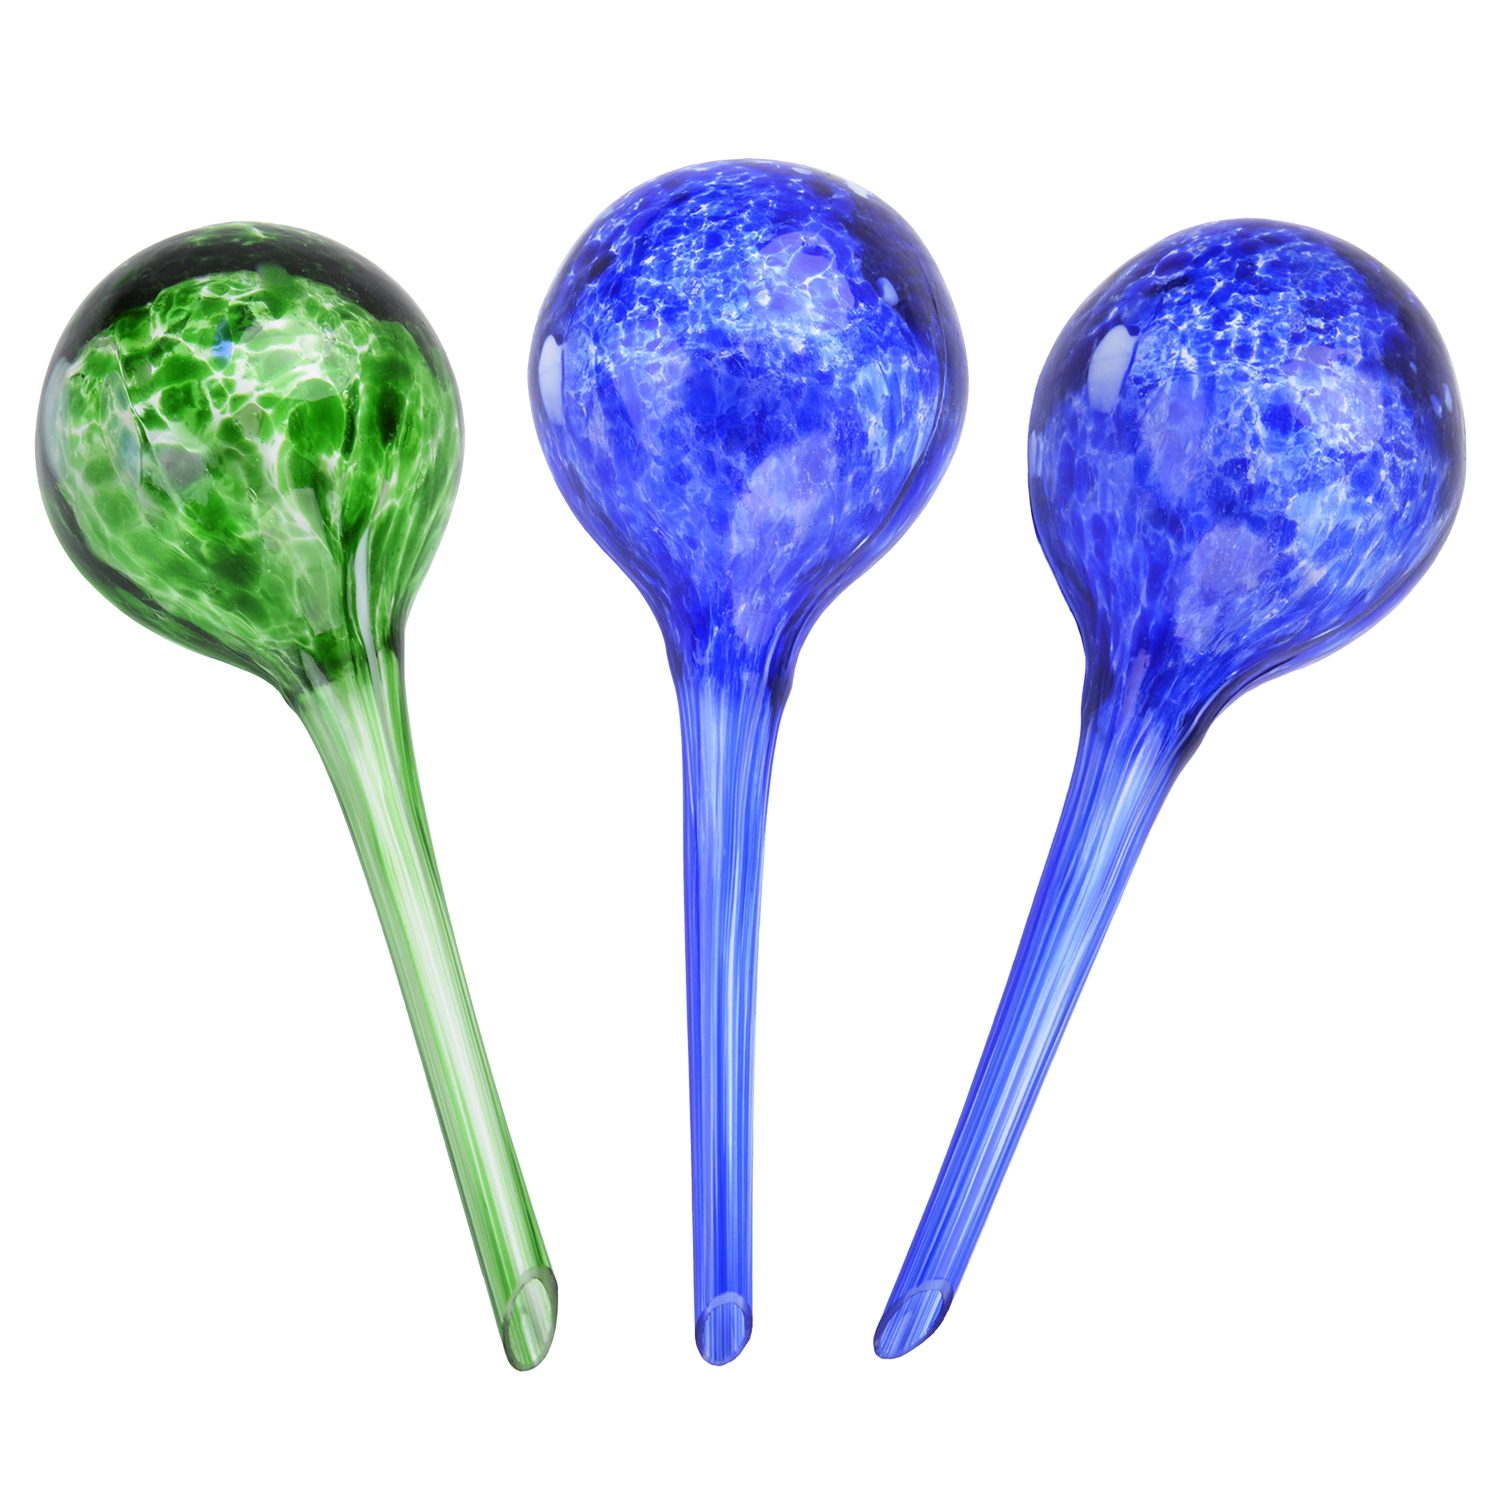 Watering Globes, Outgeek 4Pcs Plant Automatic Watering Bulbs Glass Aqua Globes for Indoor Outdoor Garden Home Office Plant